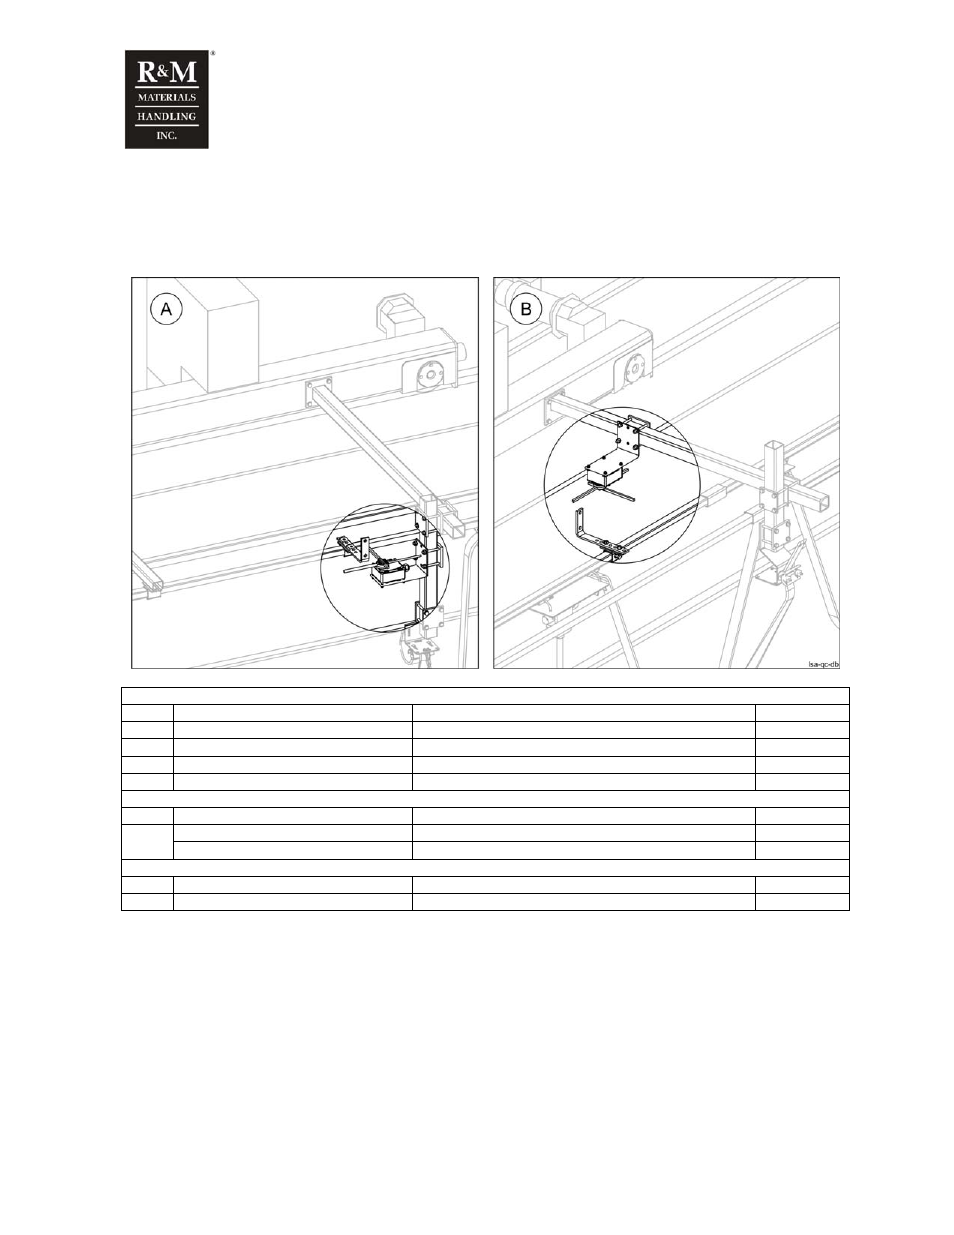 Comfortable Wire Rope Reeving Diagrams Images - Wiring Diagram ...